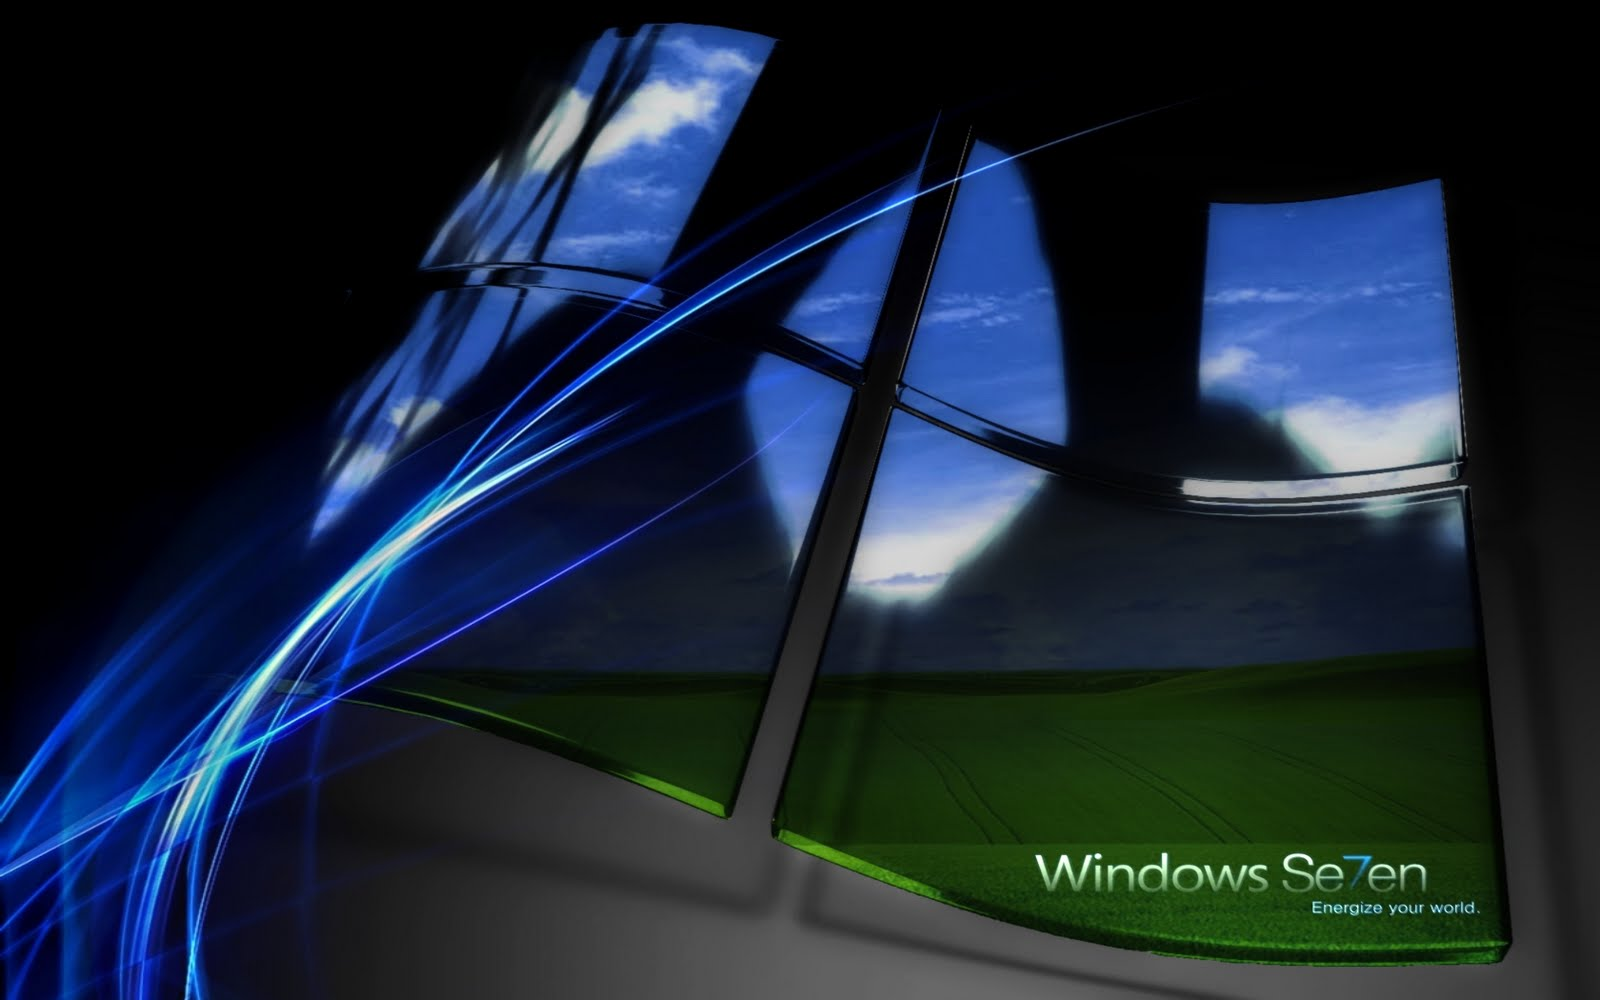 Window 7 HD Wallpaper: HD Wallpapers Of Windows 7